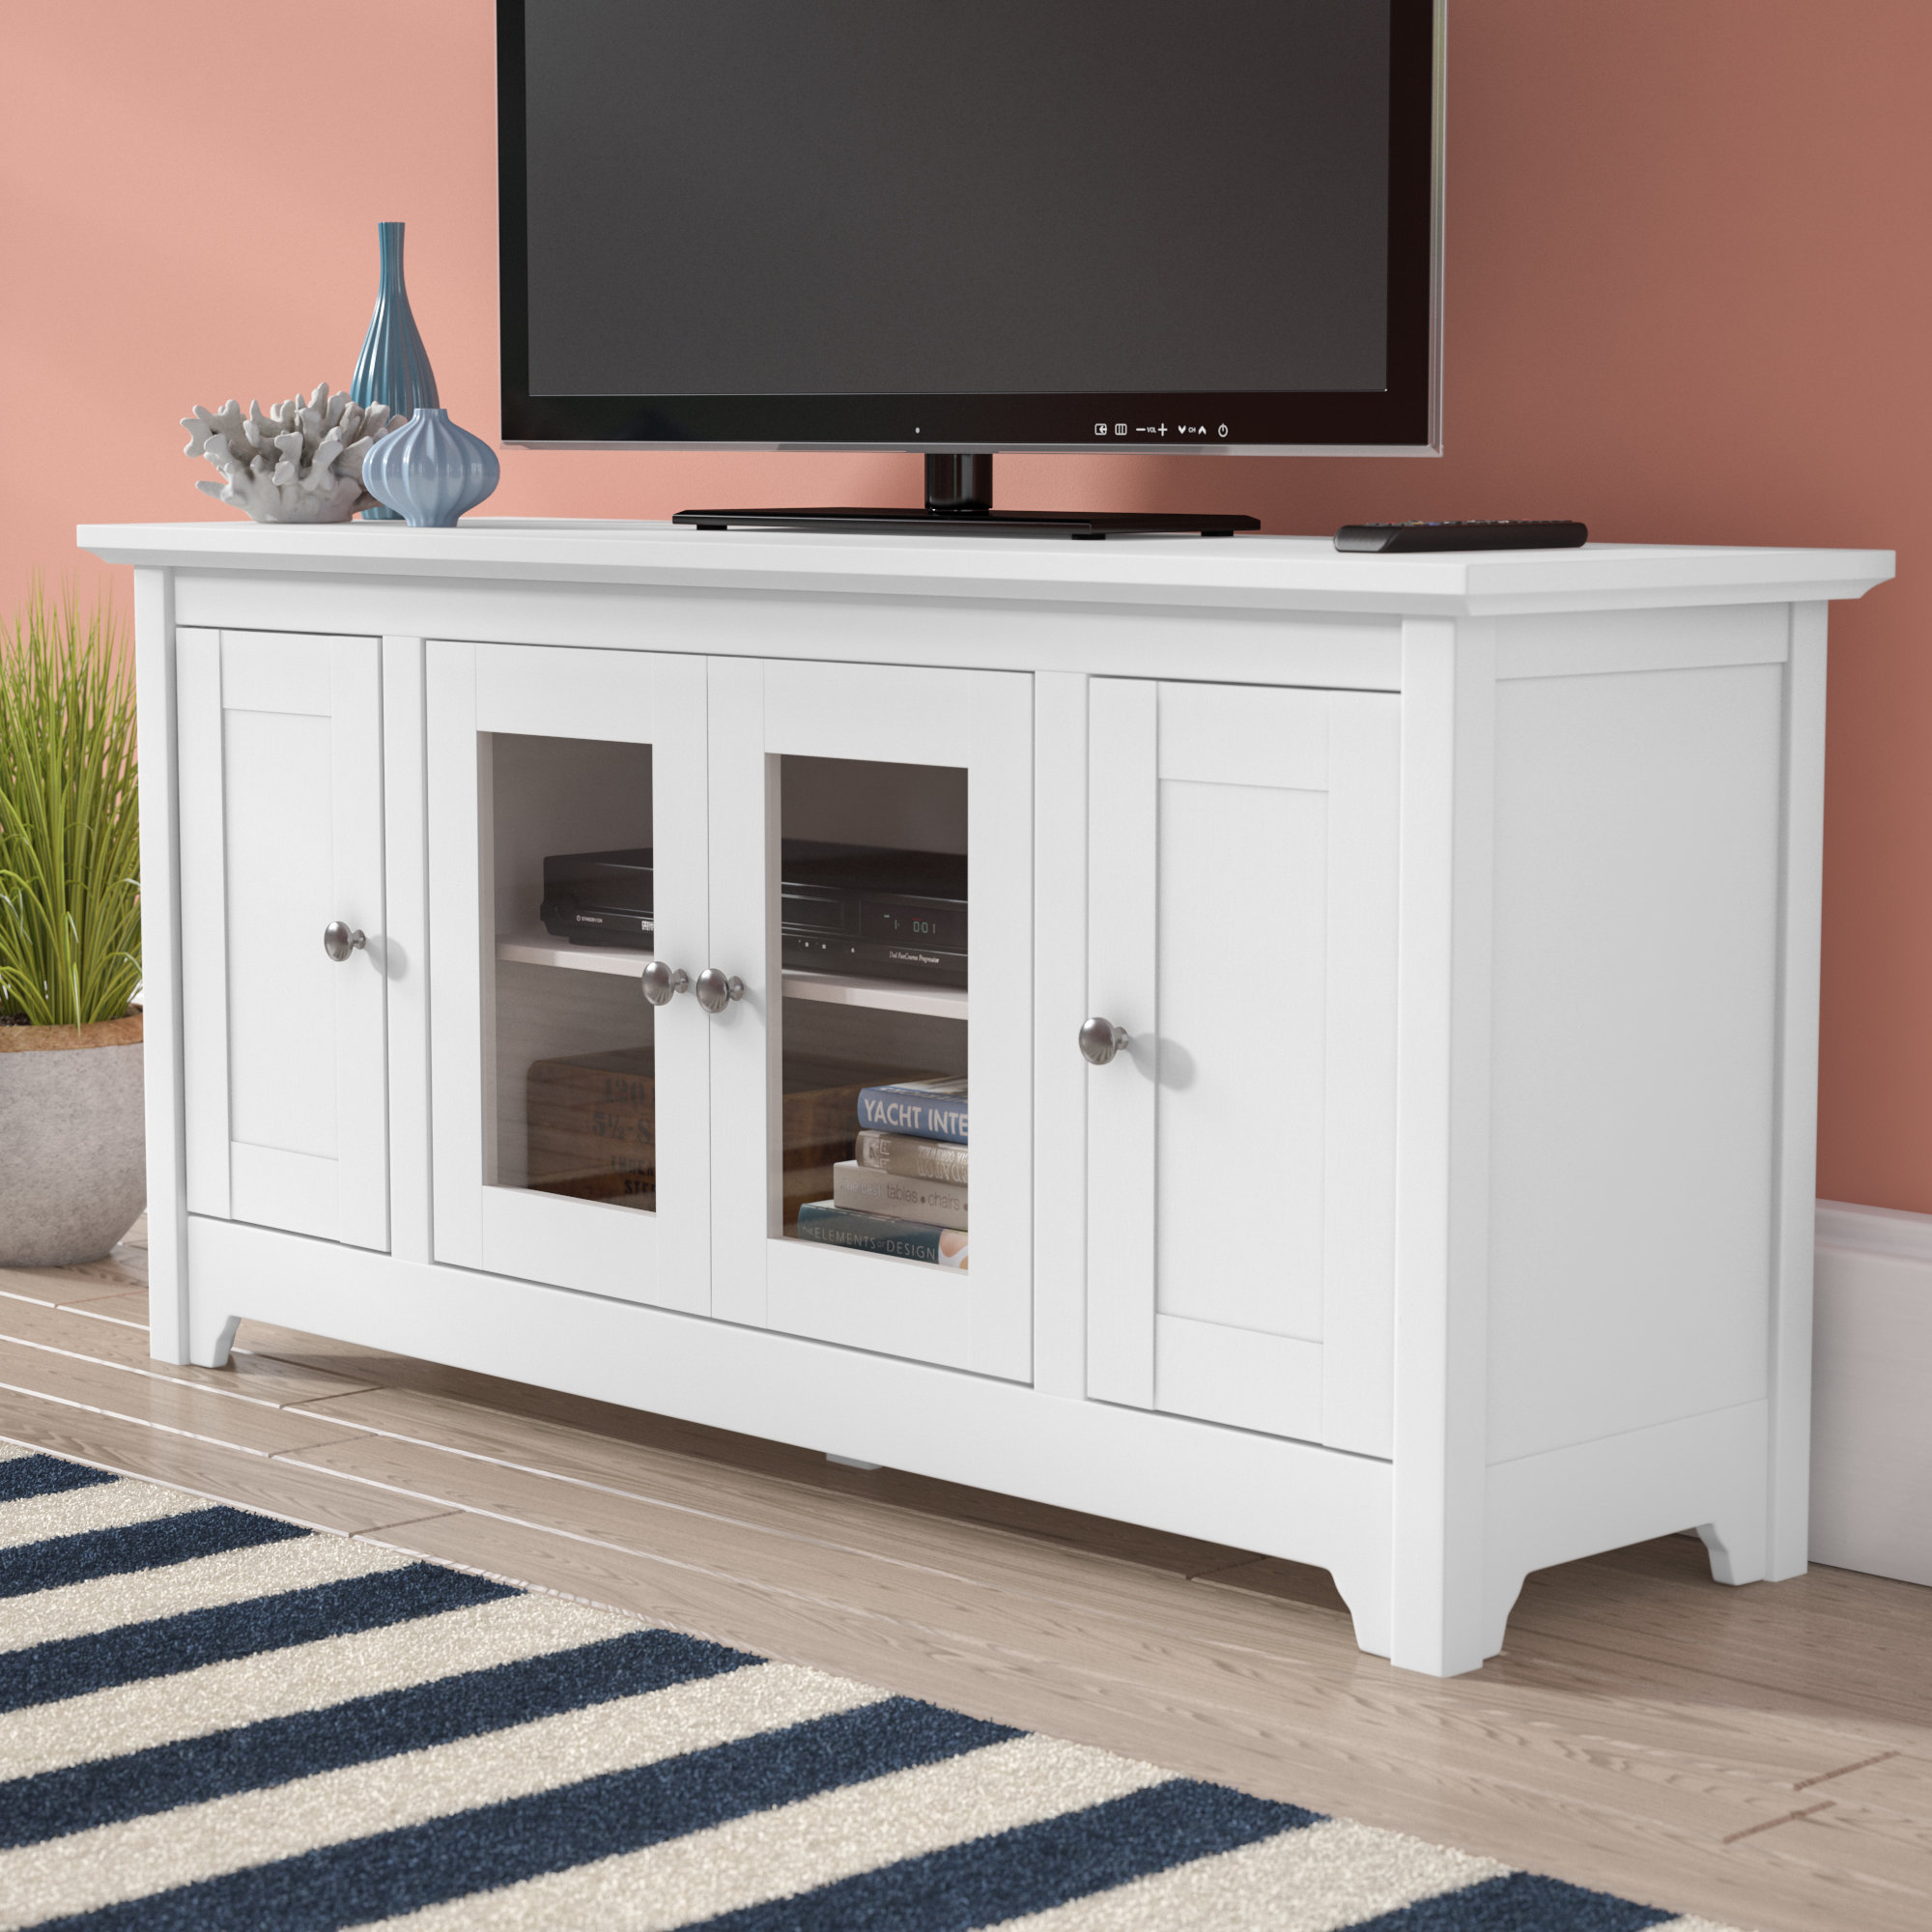 Tv Stands & Entertainment Centers You'll Love | Wayfair In Sinclair White 54 Inch Tv Stands (View 28 of 30)